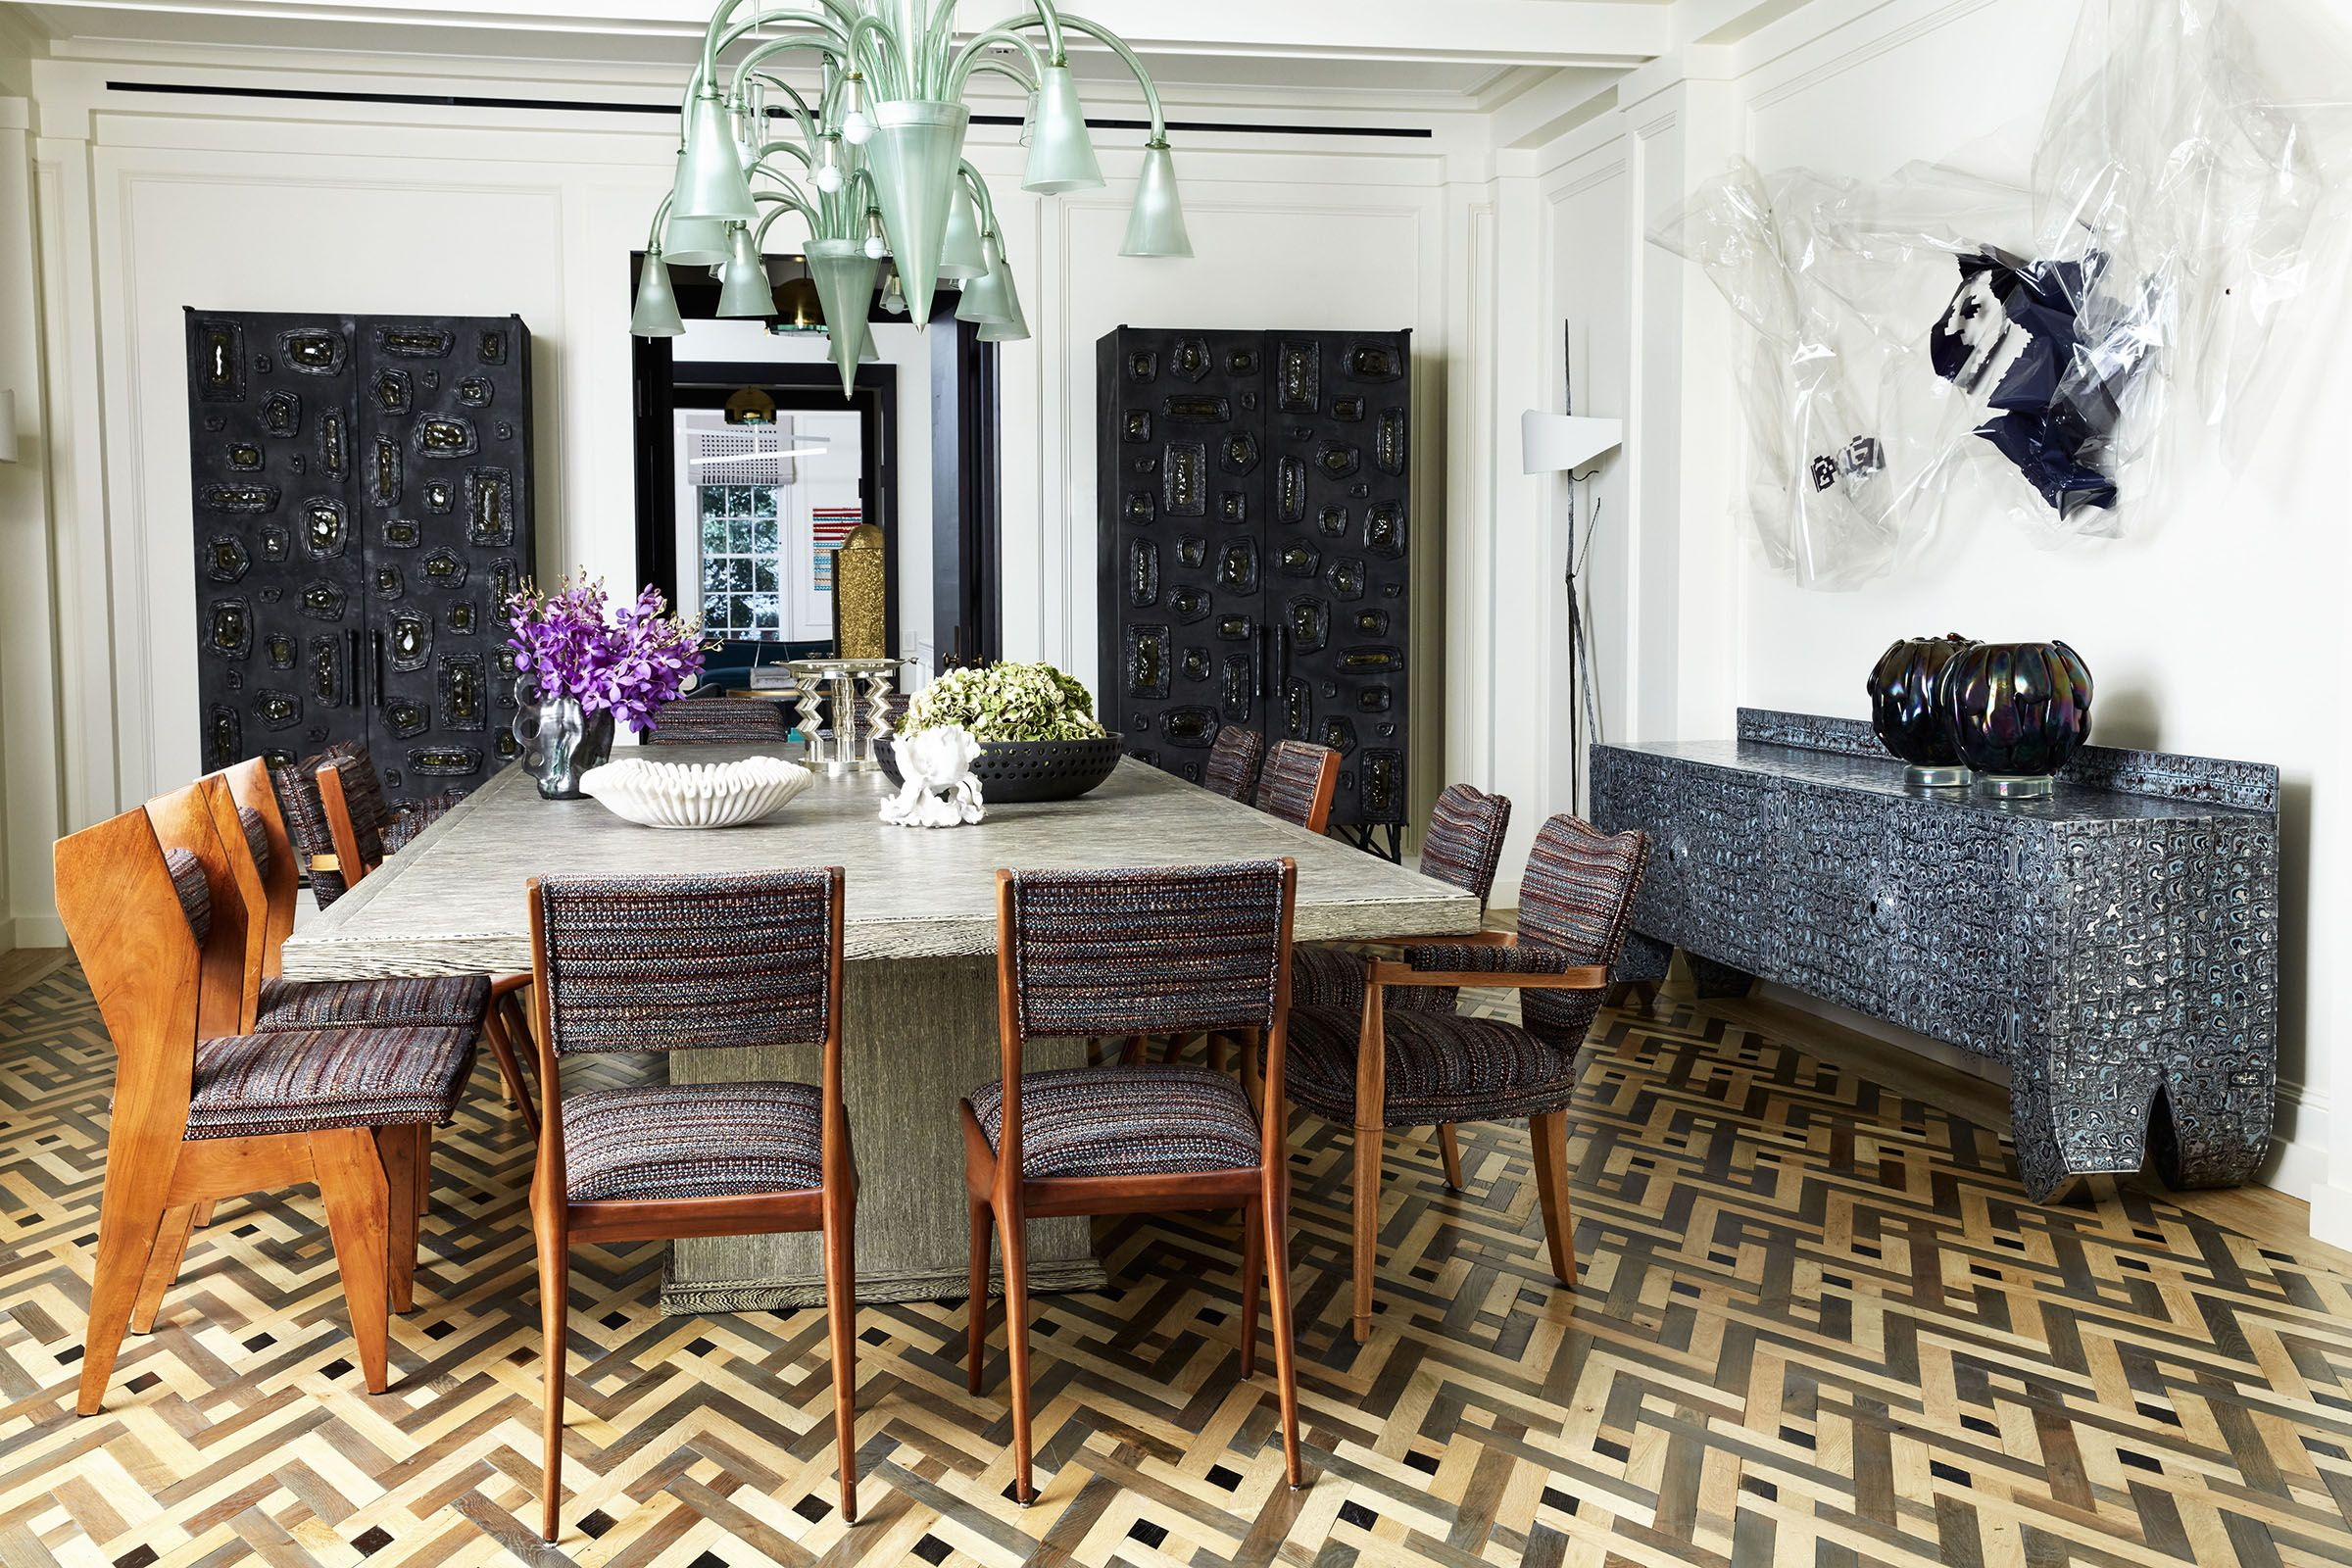 Orbiting A Dining Table With Rare Vintage Forms Encourages A